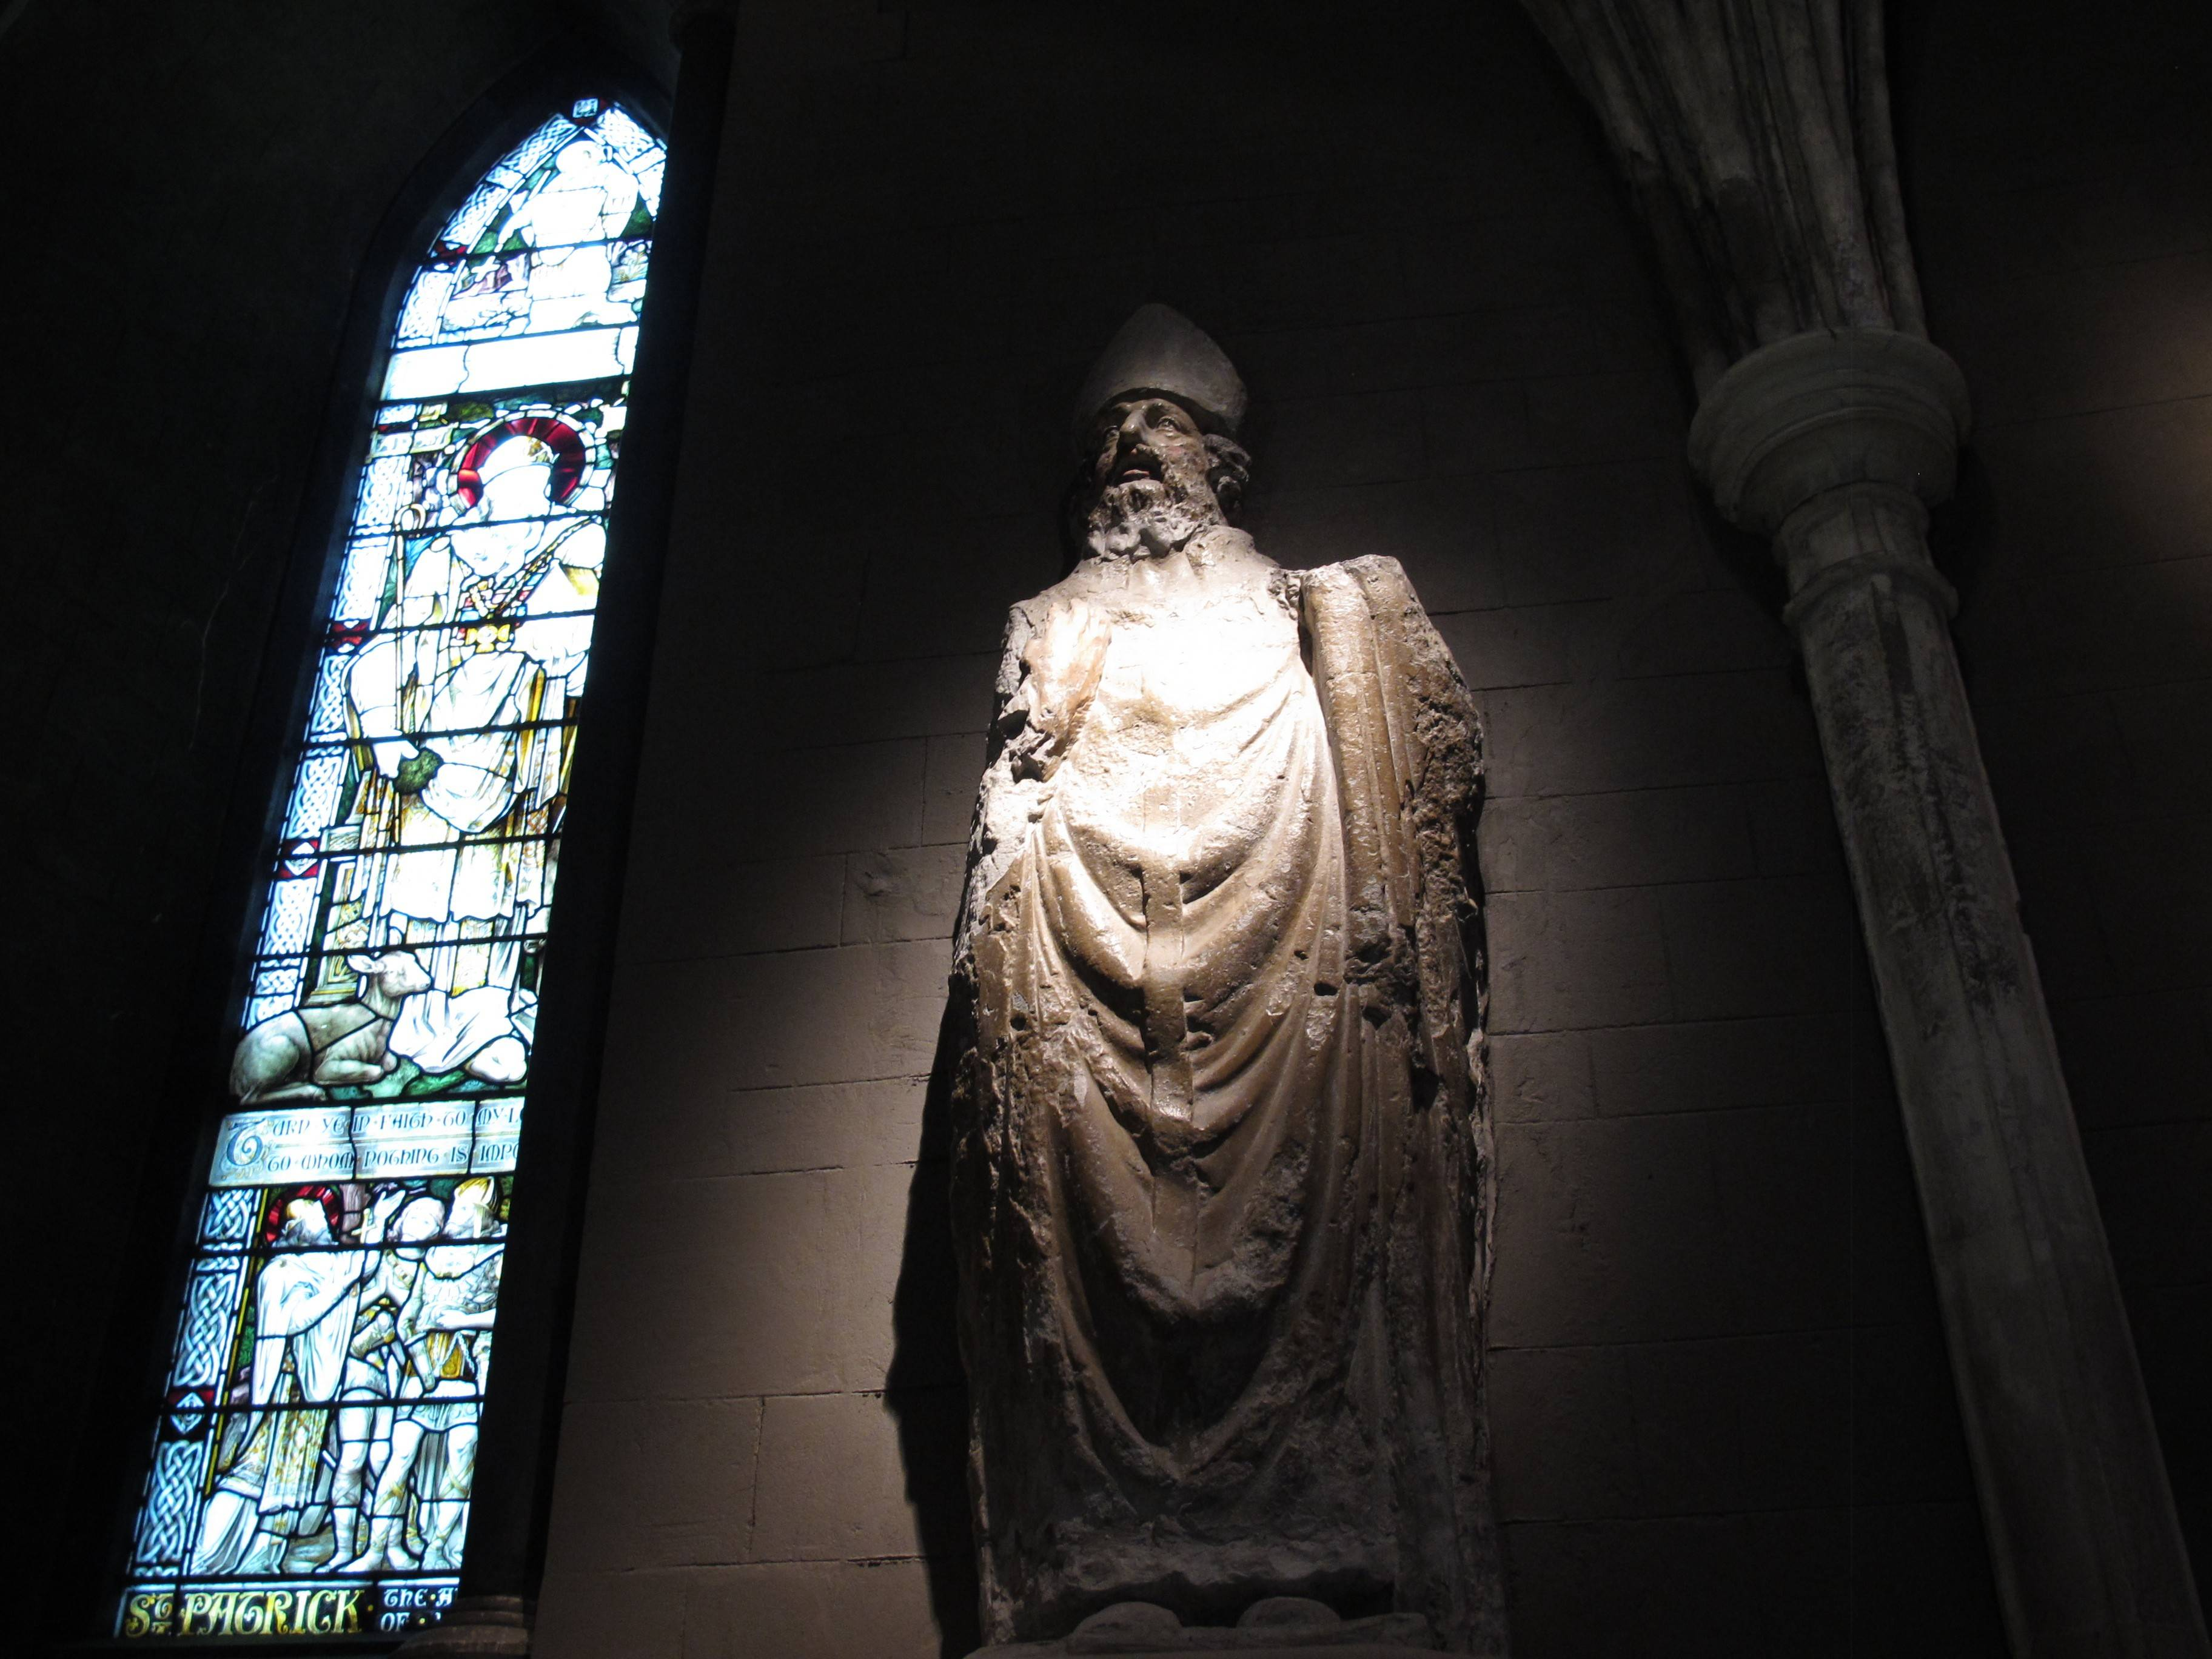 Those interested in the life of St. Patrick can visit a statue of him in St. Patrick's Cathedral, Dublin. The stained glass window depicts the life of the fifth-century saint who brought Christianity to Ireland.